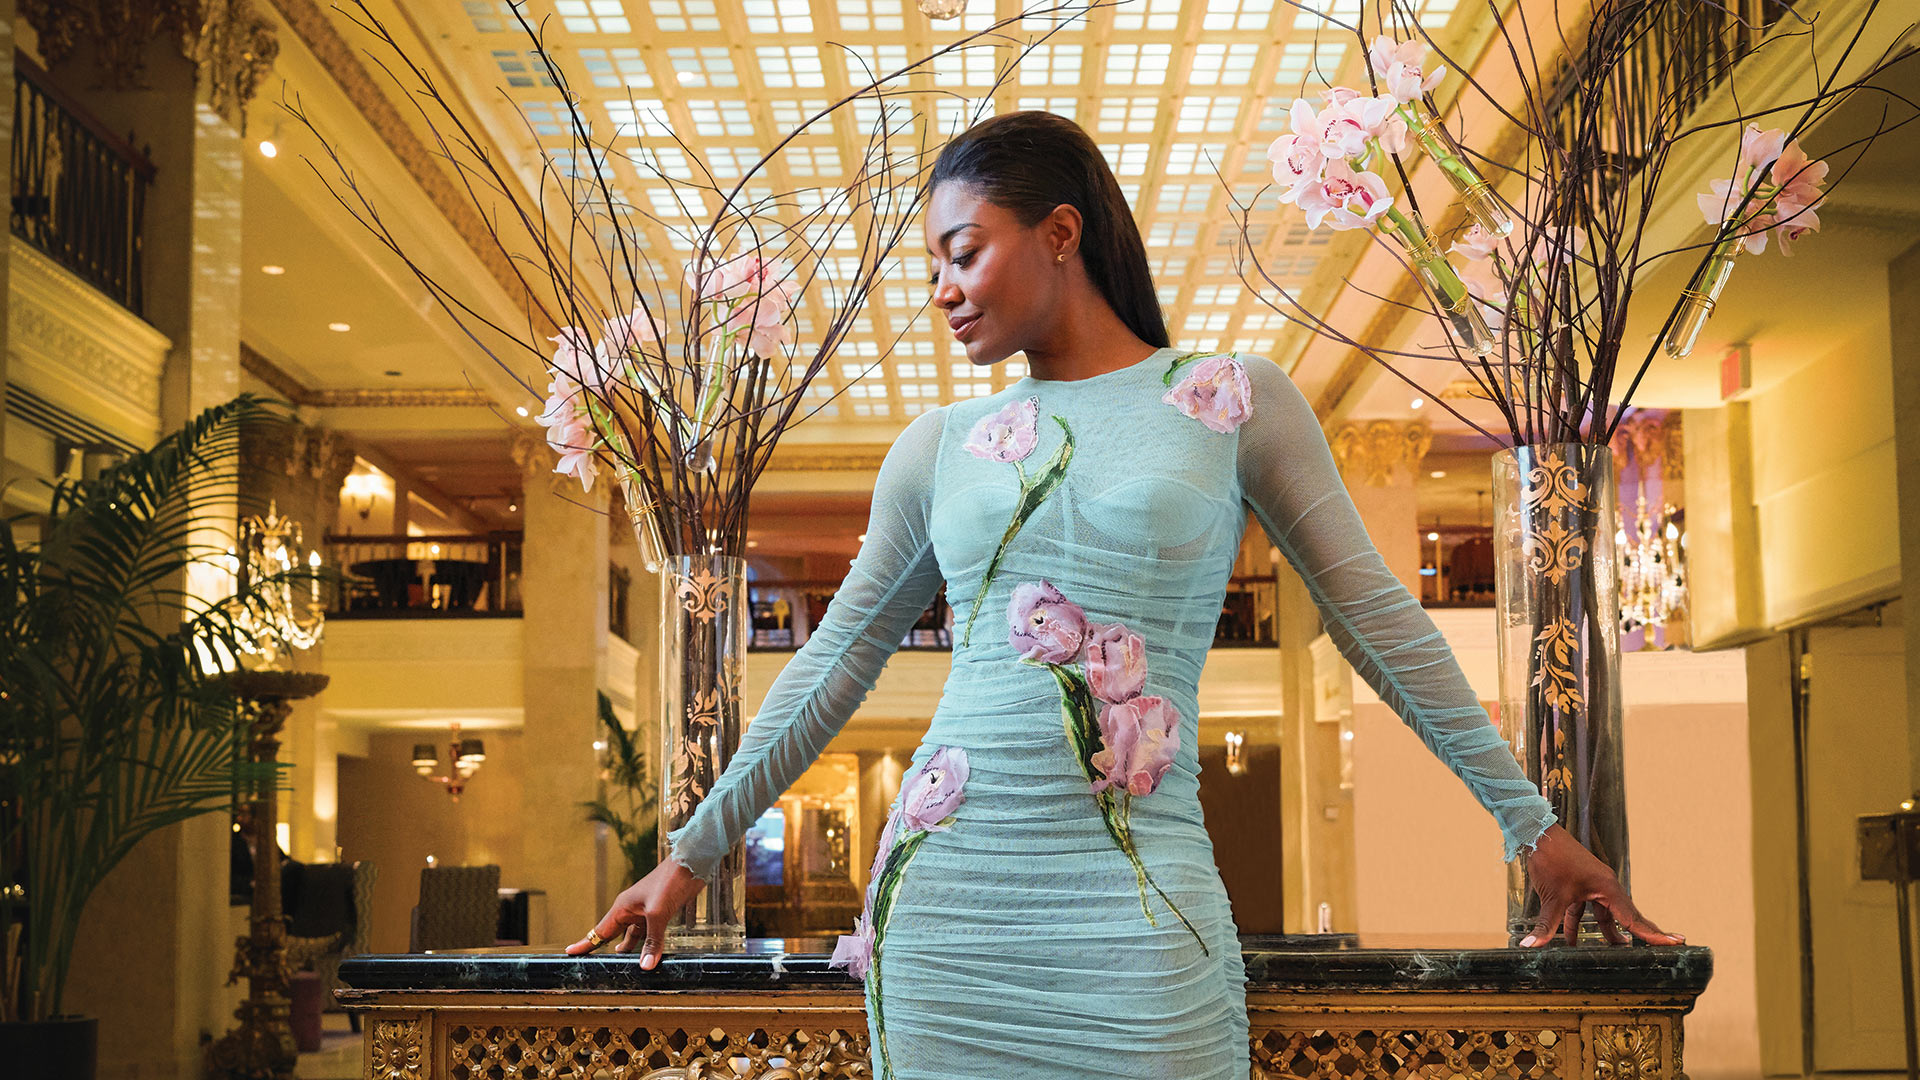 Patina Miller poised and perfect in the Mayflower Hotel's elegant lobby